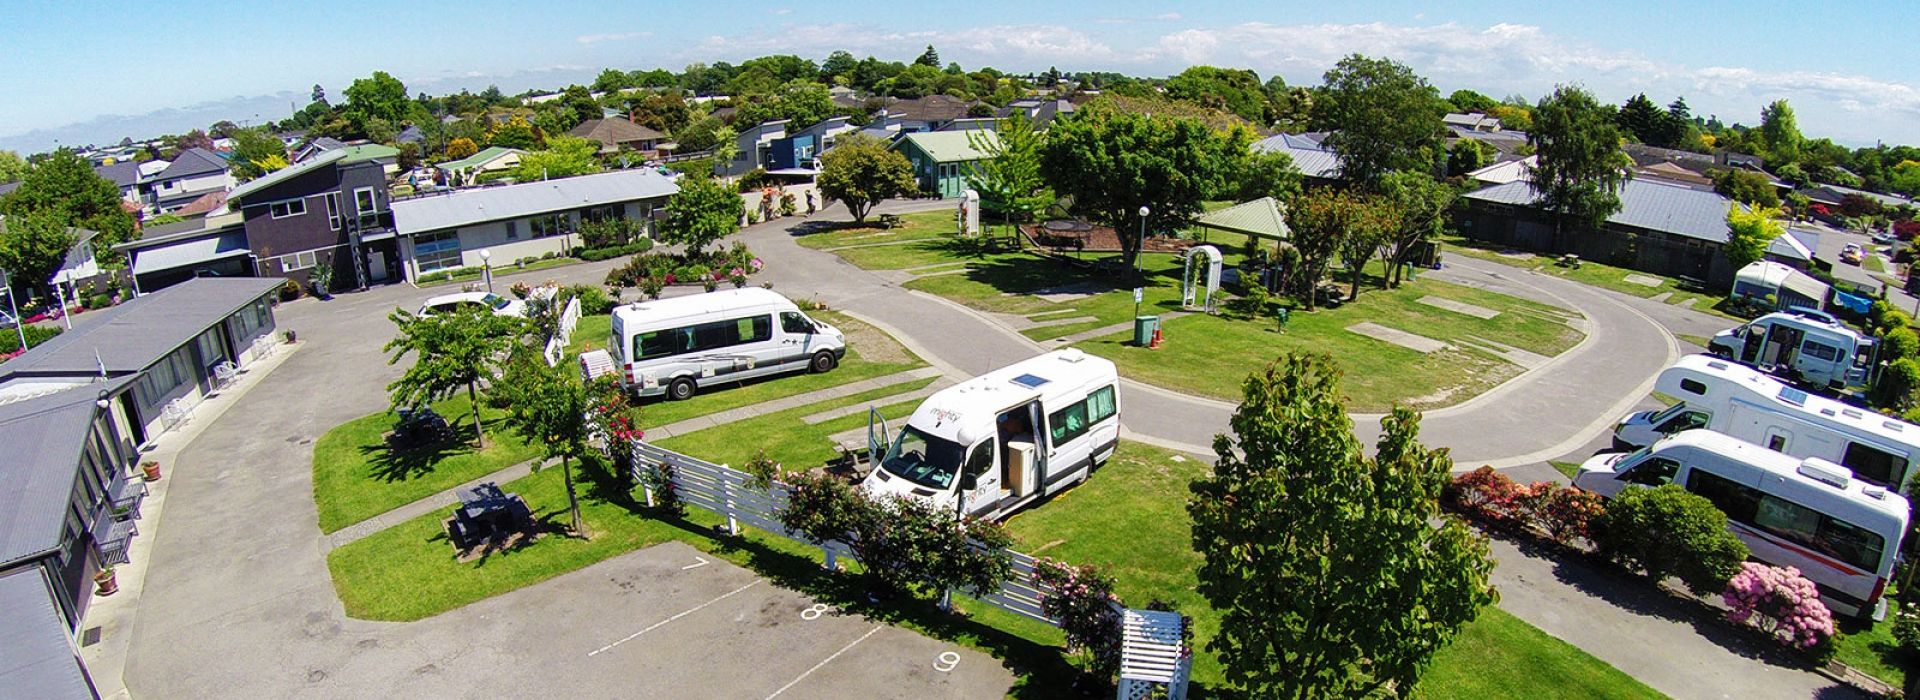 Camping Sites Christchurch